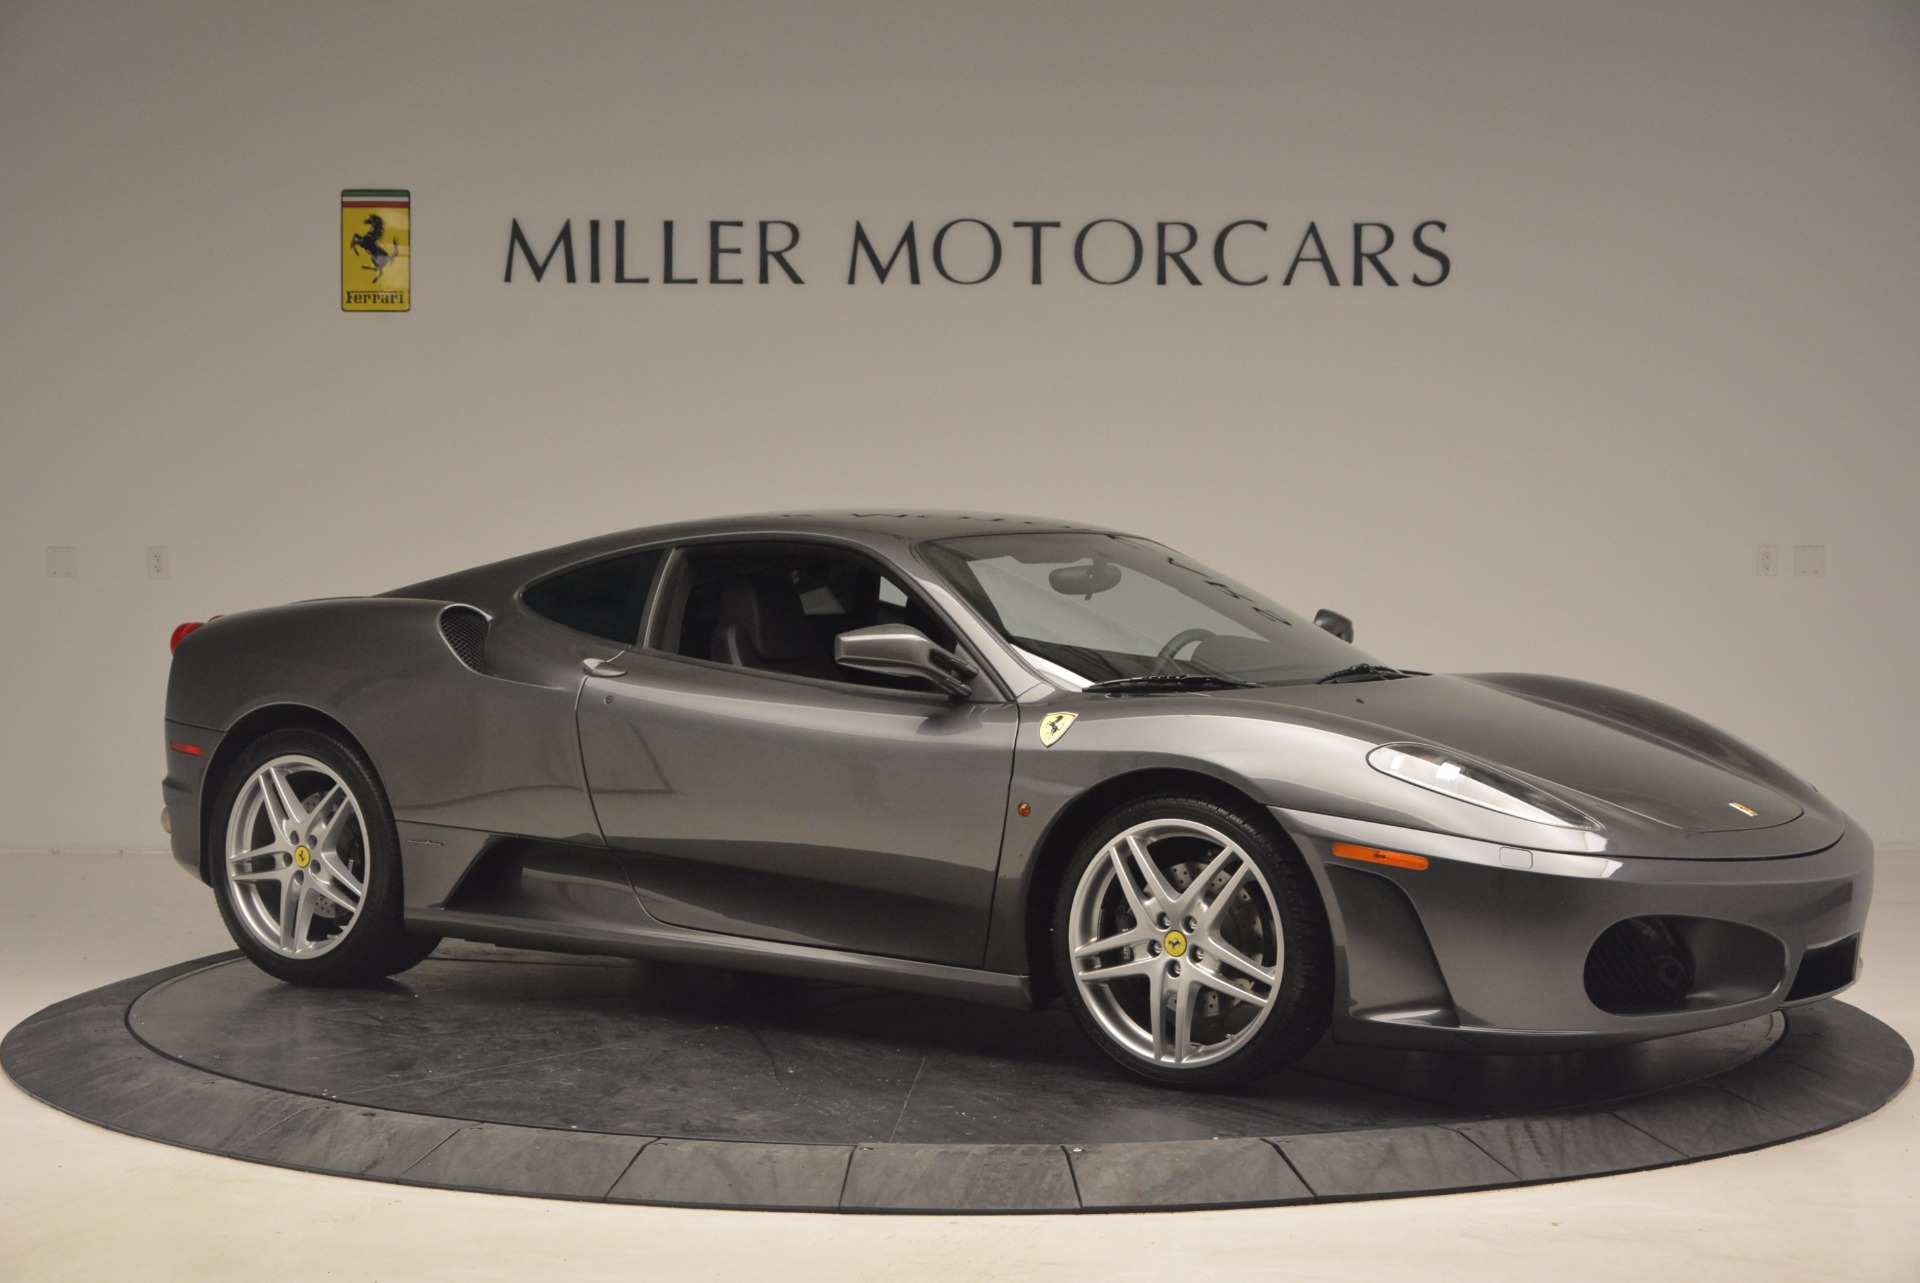 Used 2005 Ferrari F430 6-Speed Manual For Sale In Westport, CT 1286_p10